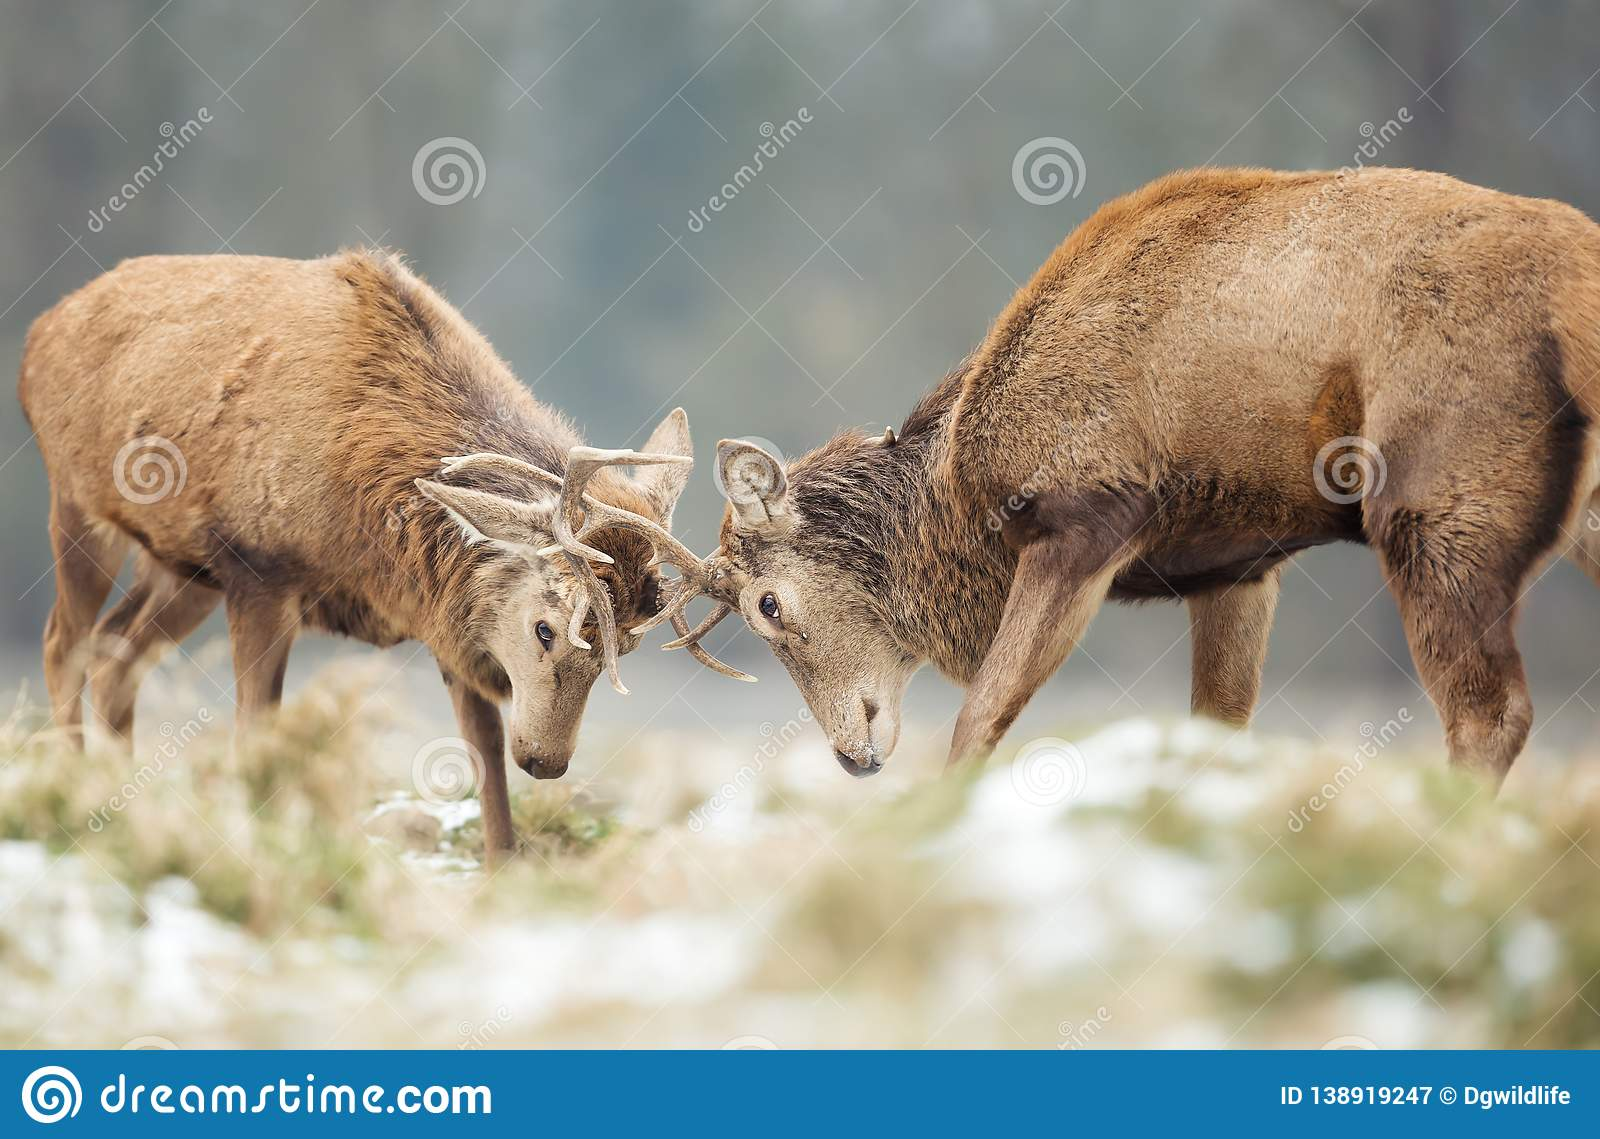 Red deer stags fighting in winter